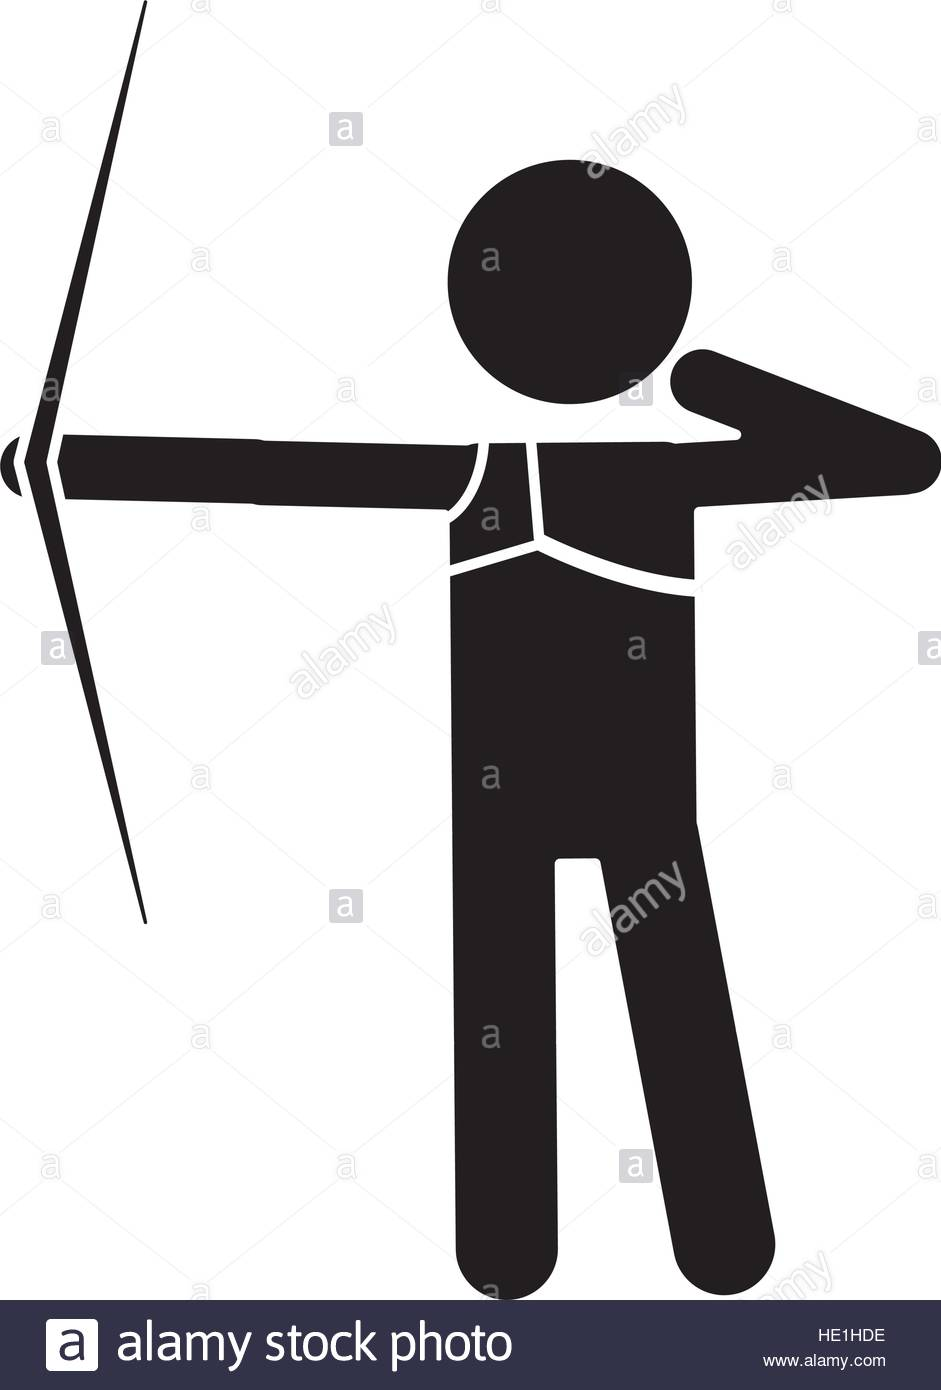 941x1390 Silhouette Archery Player Aiming Bow Game Stock Vector Art